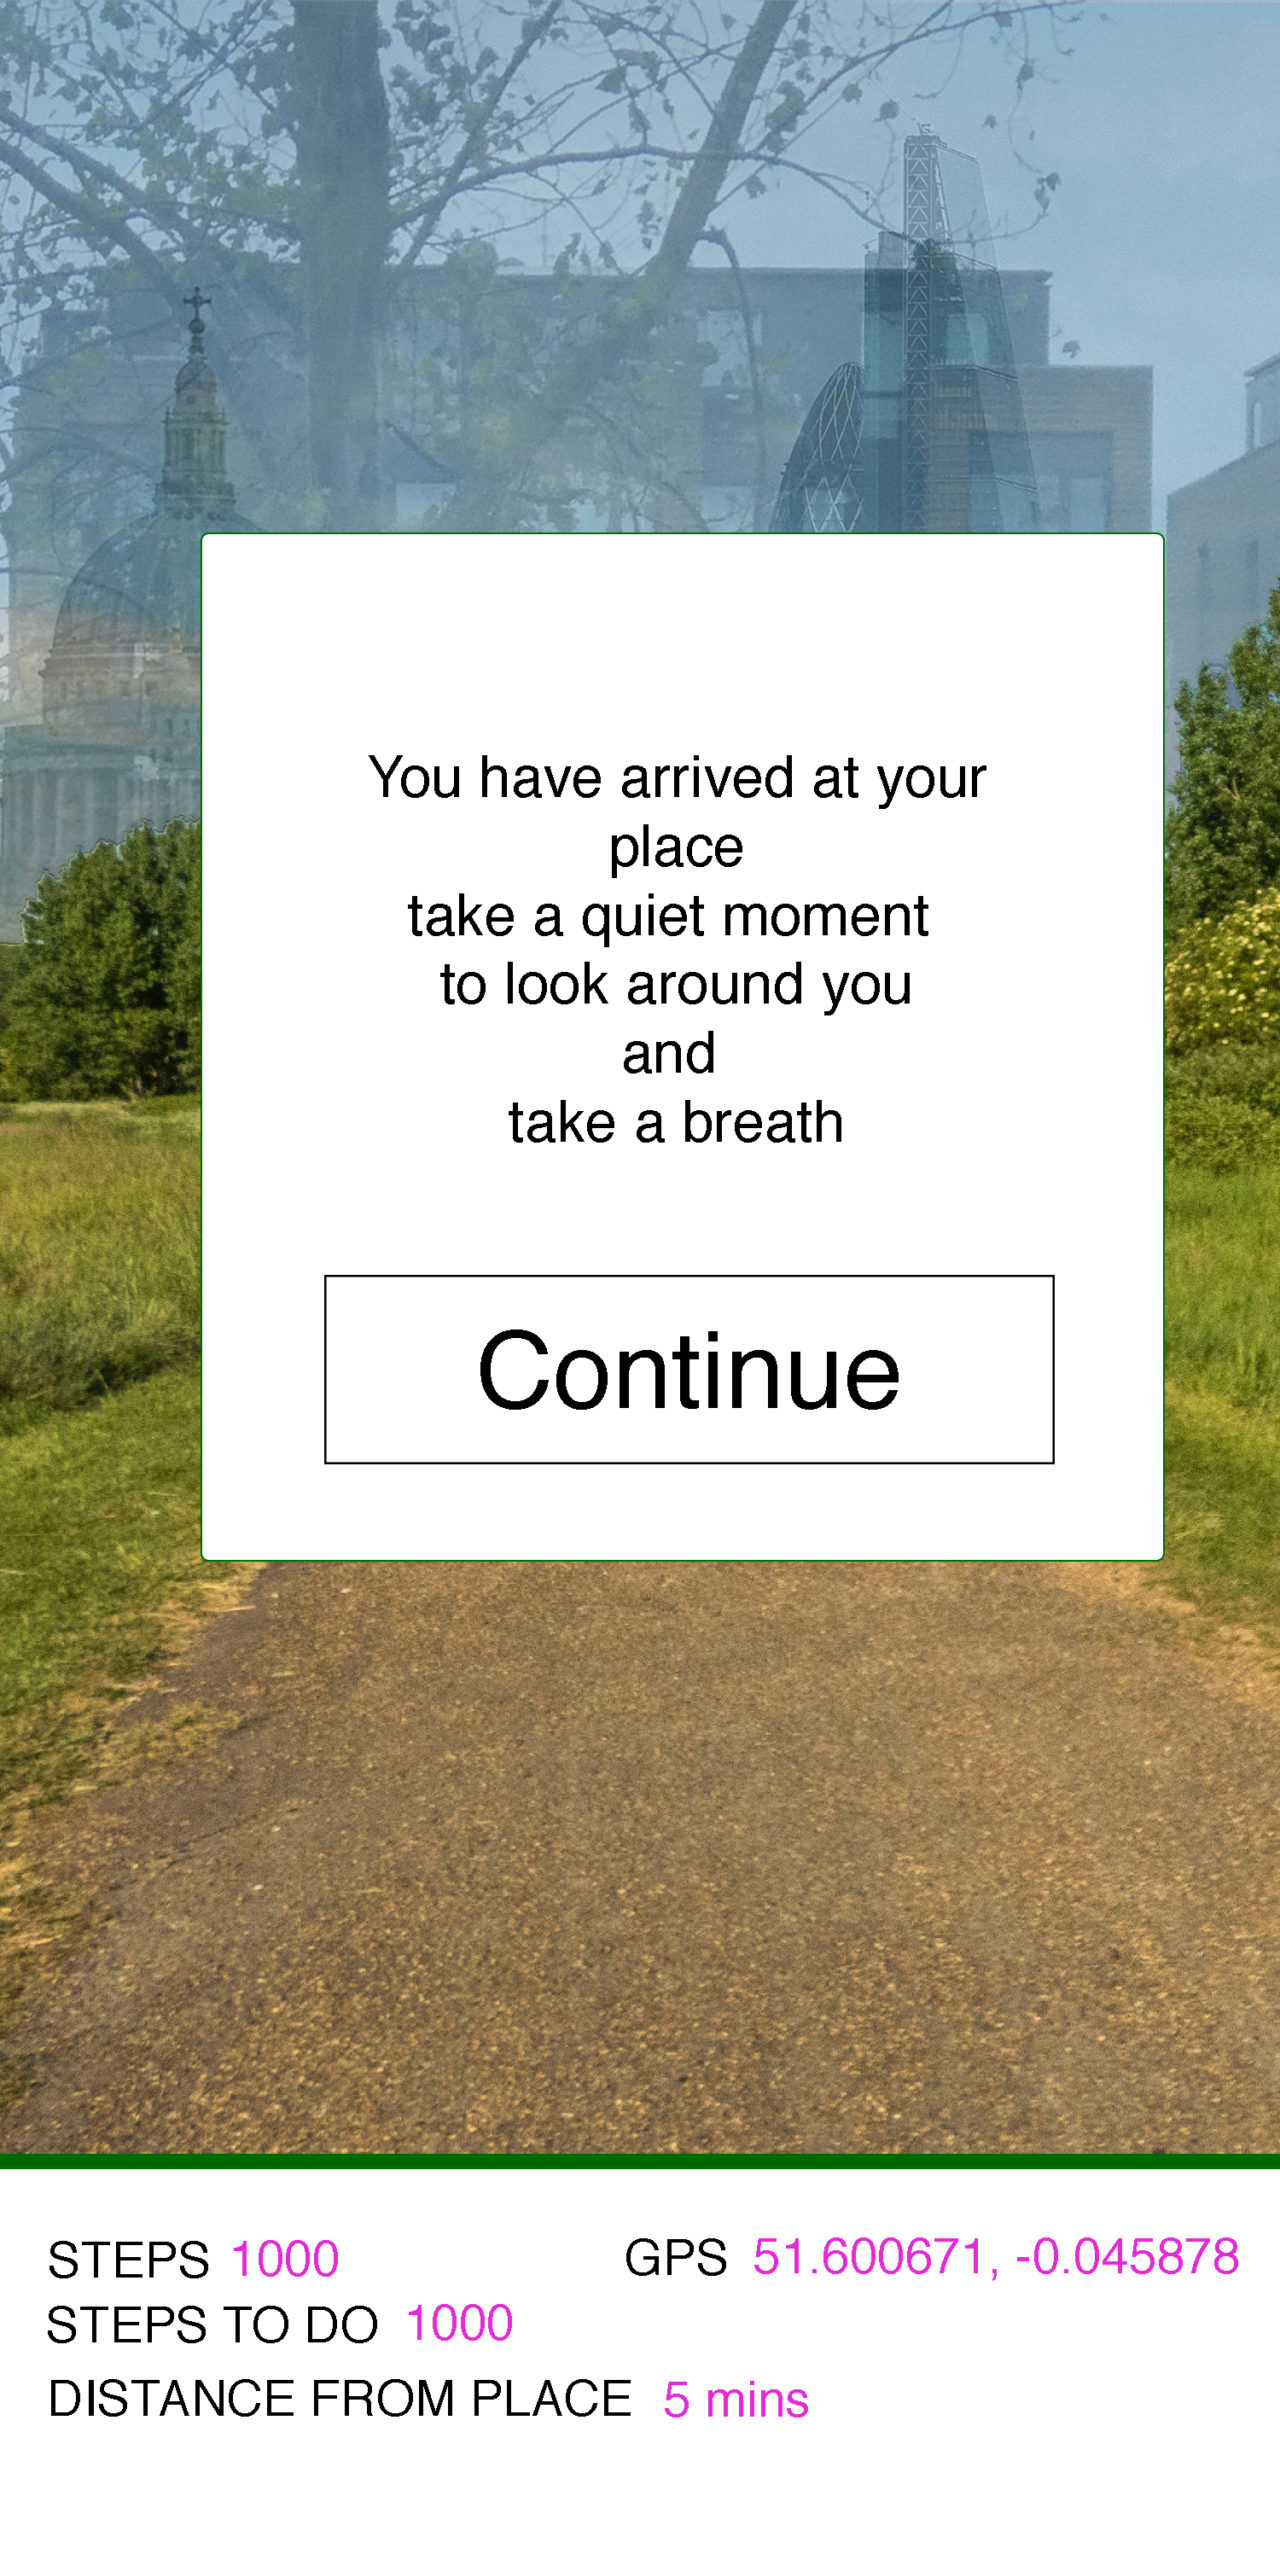 screen shot of mobile app with a message - 'you have arrived at your place take a quiet moment to look around you and take a breath, with a continue button and a path to trees and buildings in the background